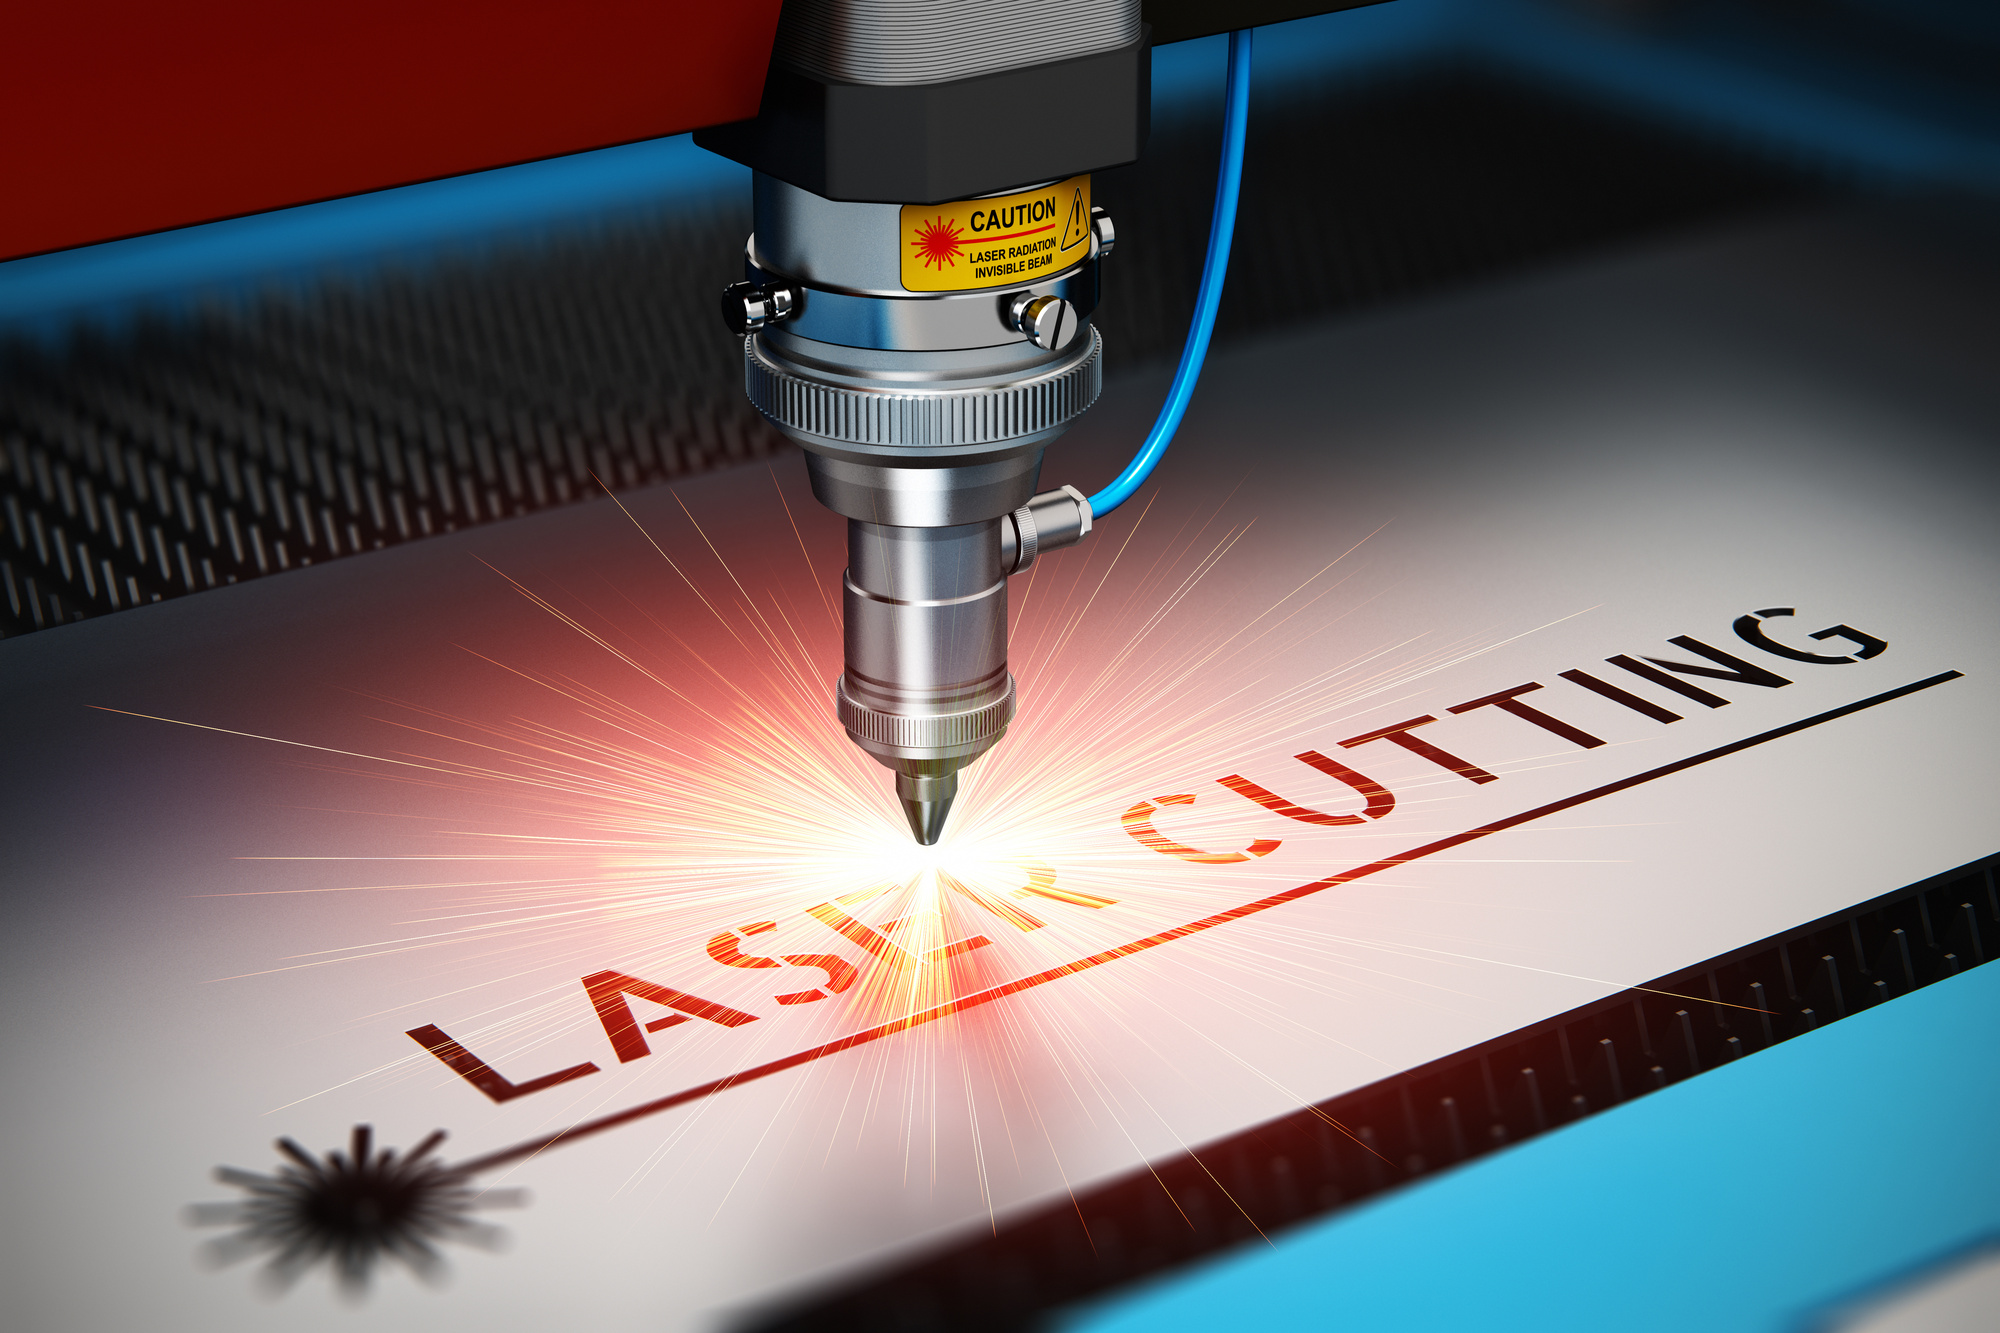 How Do Laser Cutters Work?